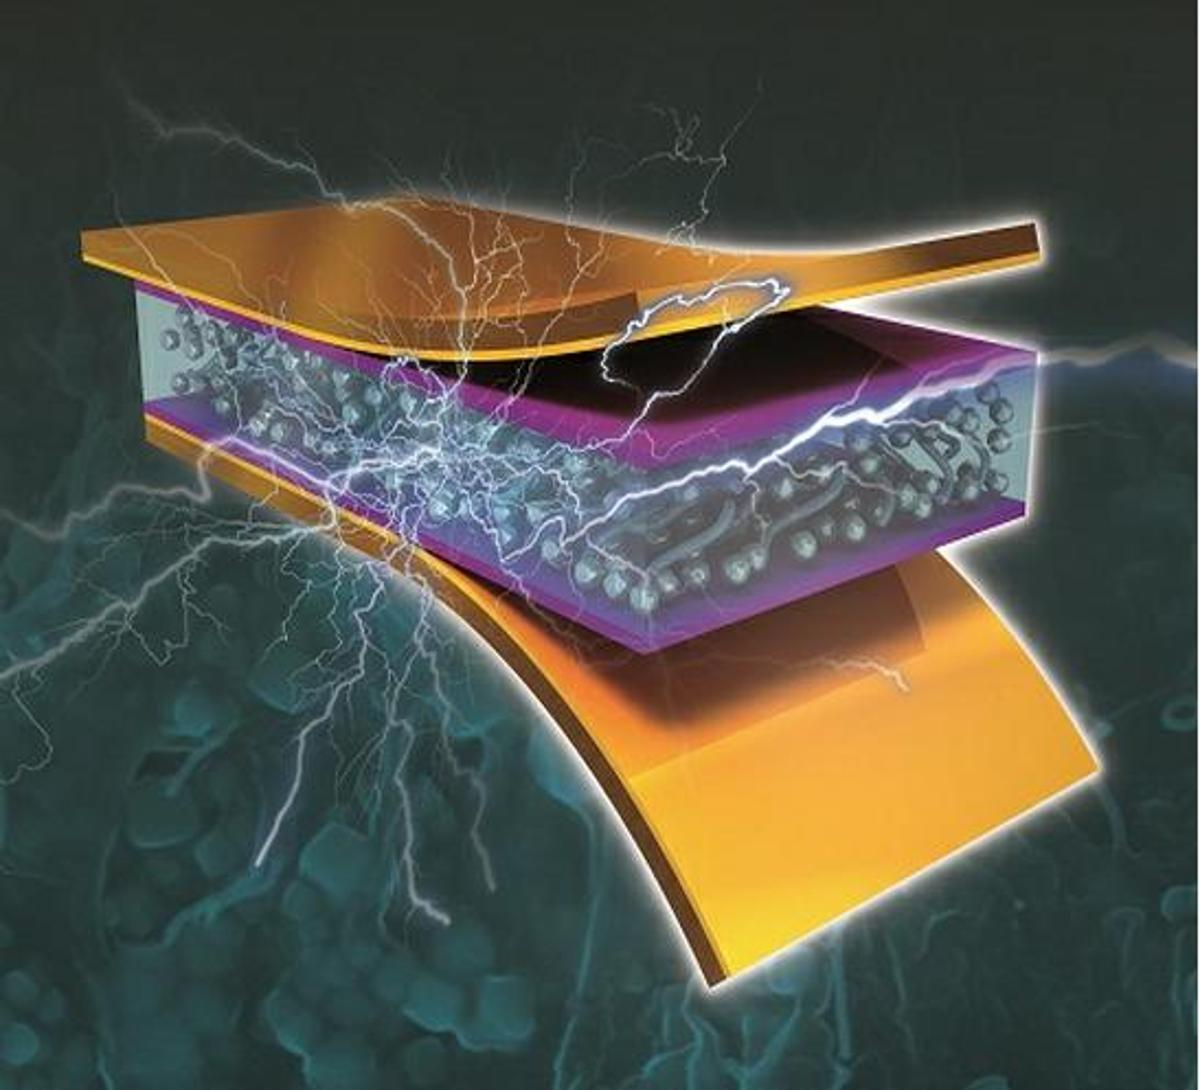 KAIST's nanocomposite piezoelectric generator produces electricity from vibrational and mechanical energy (Image: KAIST)